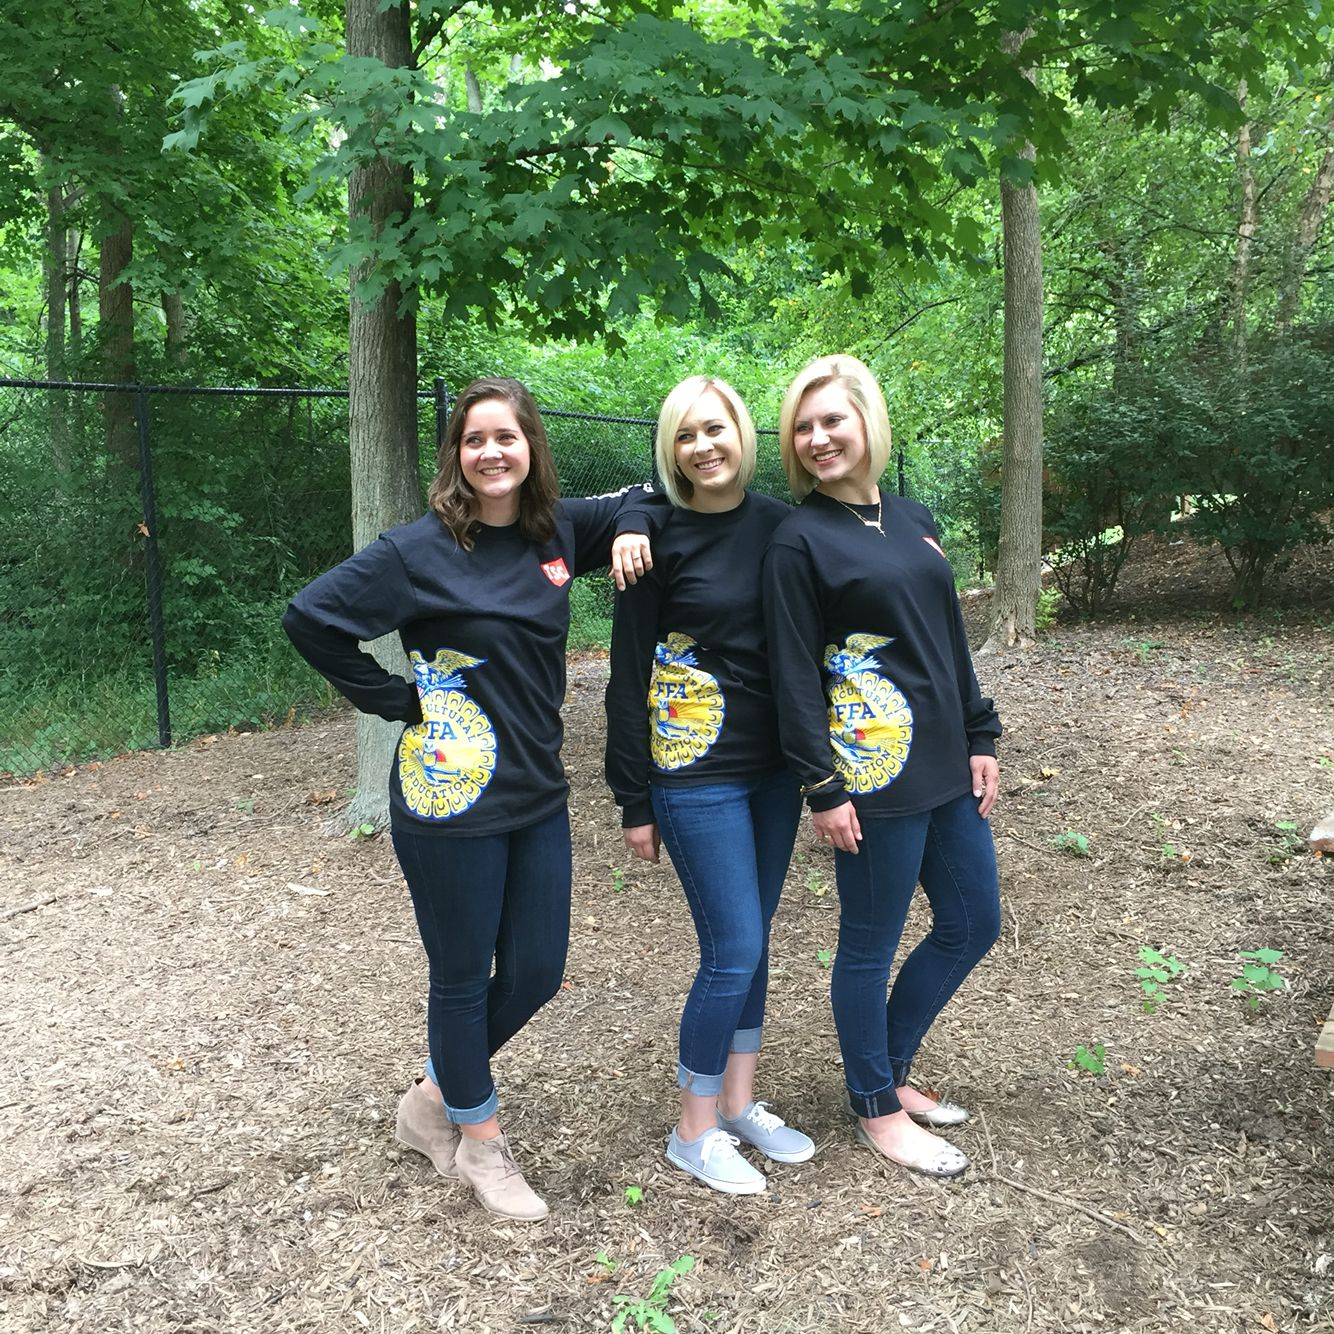 Tractor supply unveiled the 2016 national ffa tees find yours in tractor supply unveiled the 2016 national ffa tees find yours in tsc stores at the buycottarizona Gallery